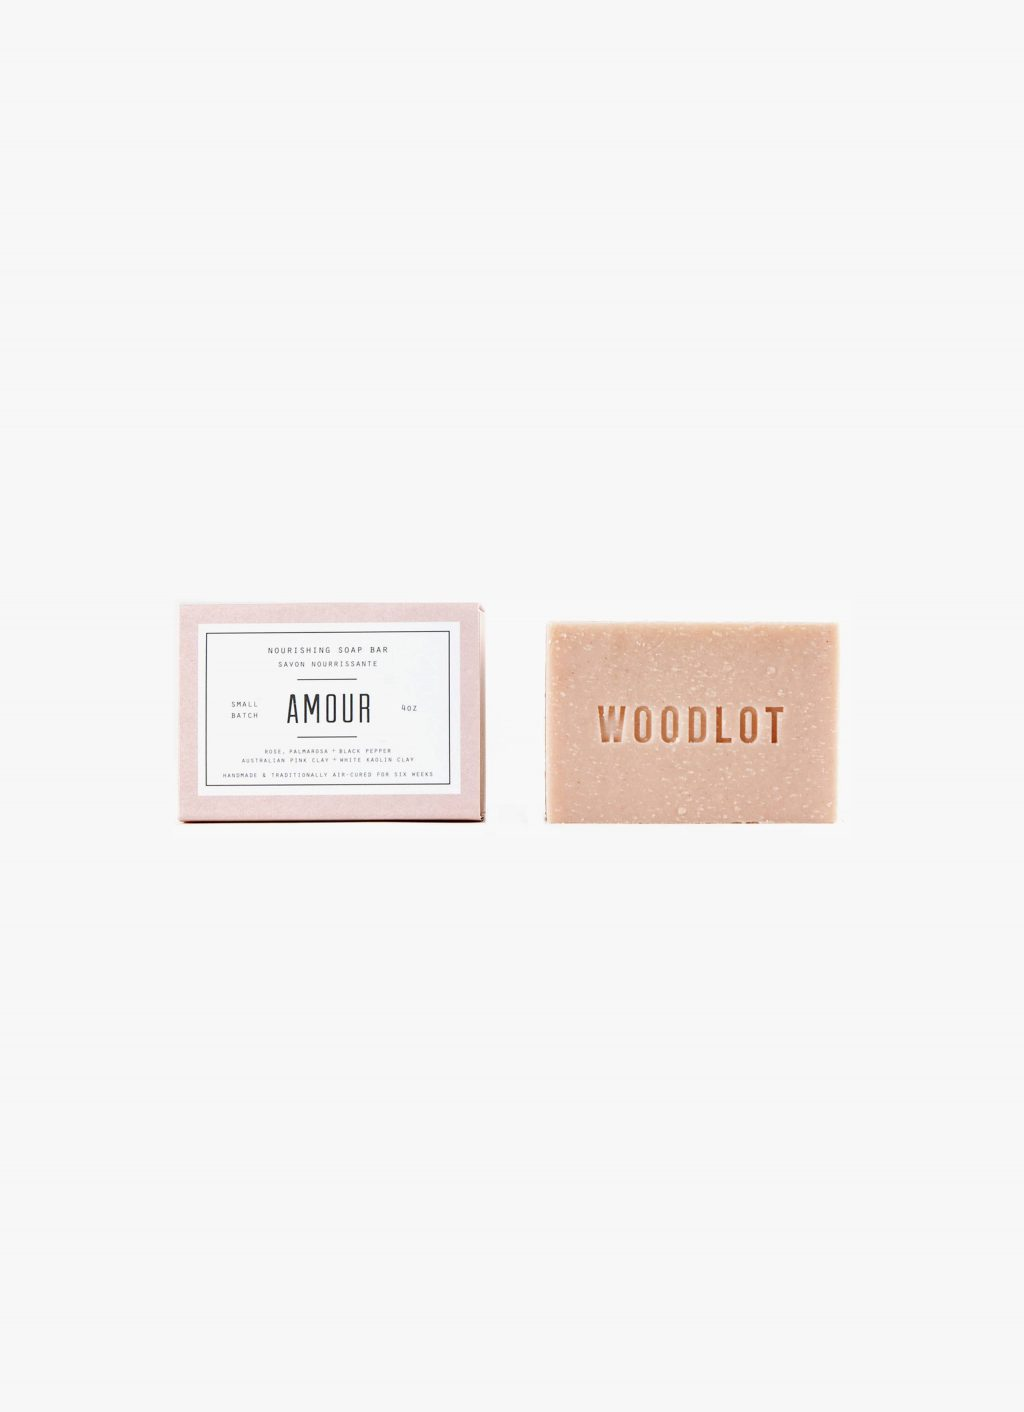 Woodlot - 4OZ- Soap Bar - Amour